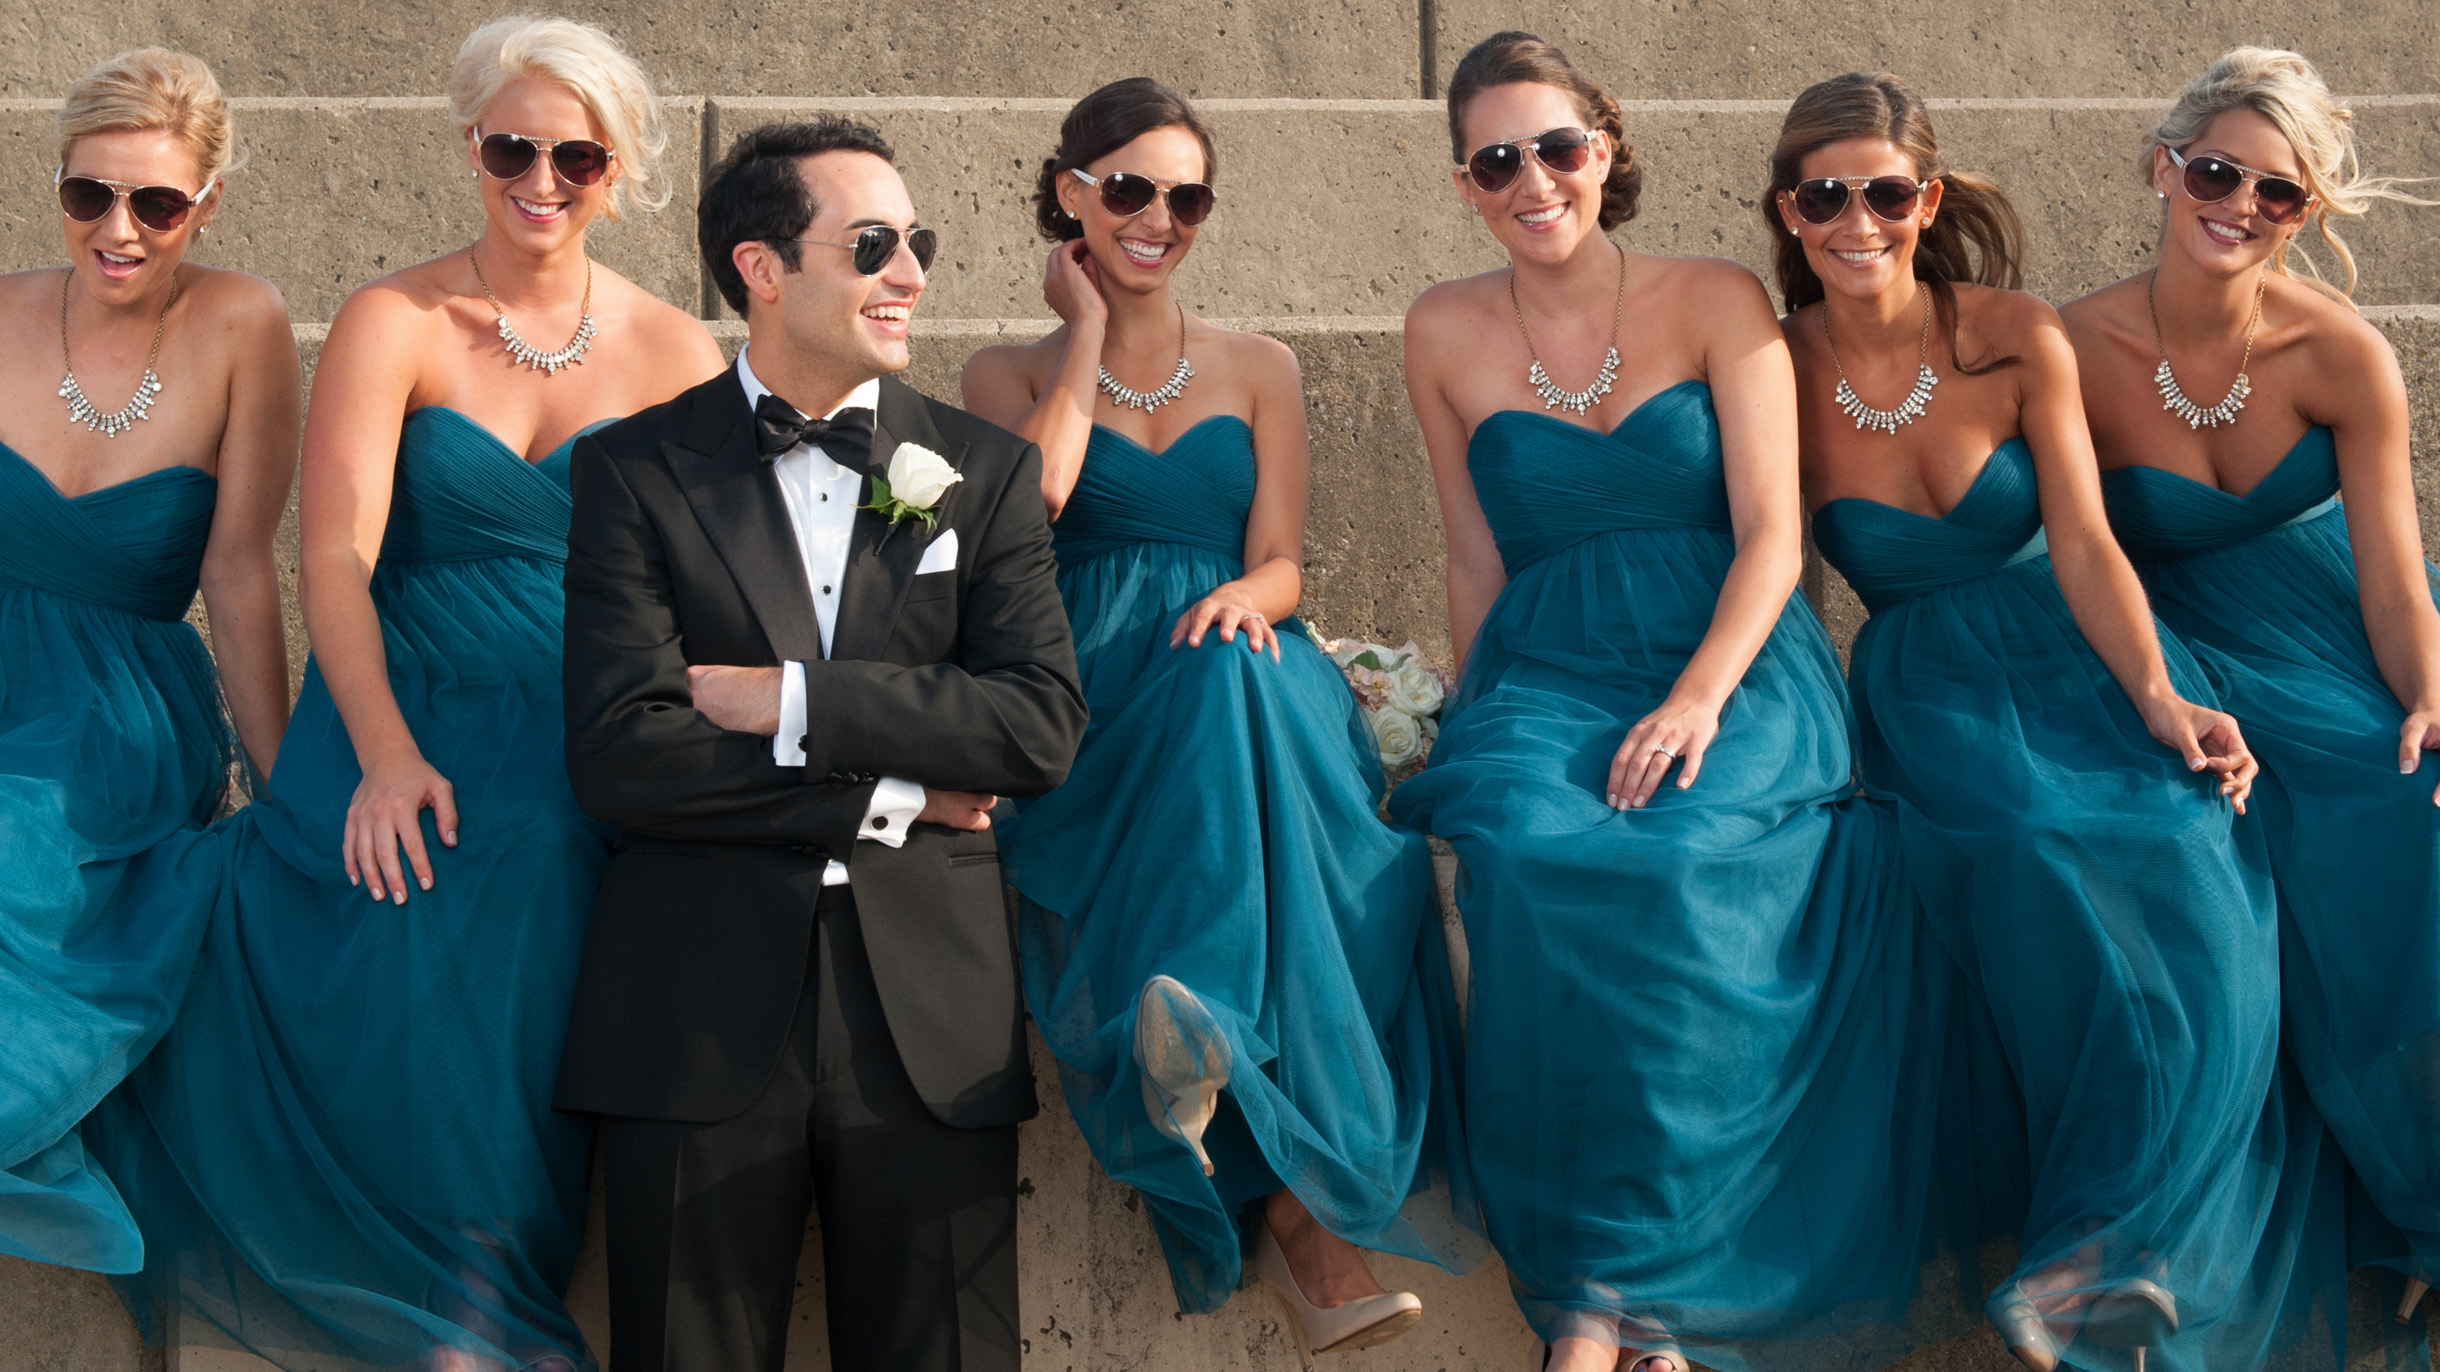 Bridesmaids posing with groom in sunglasses